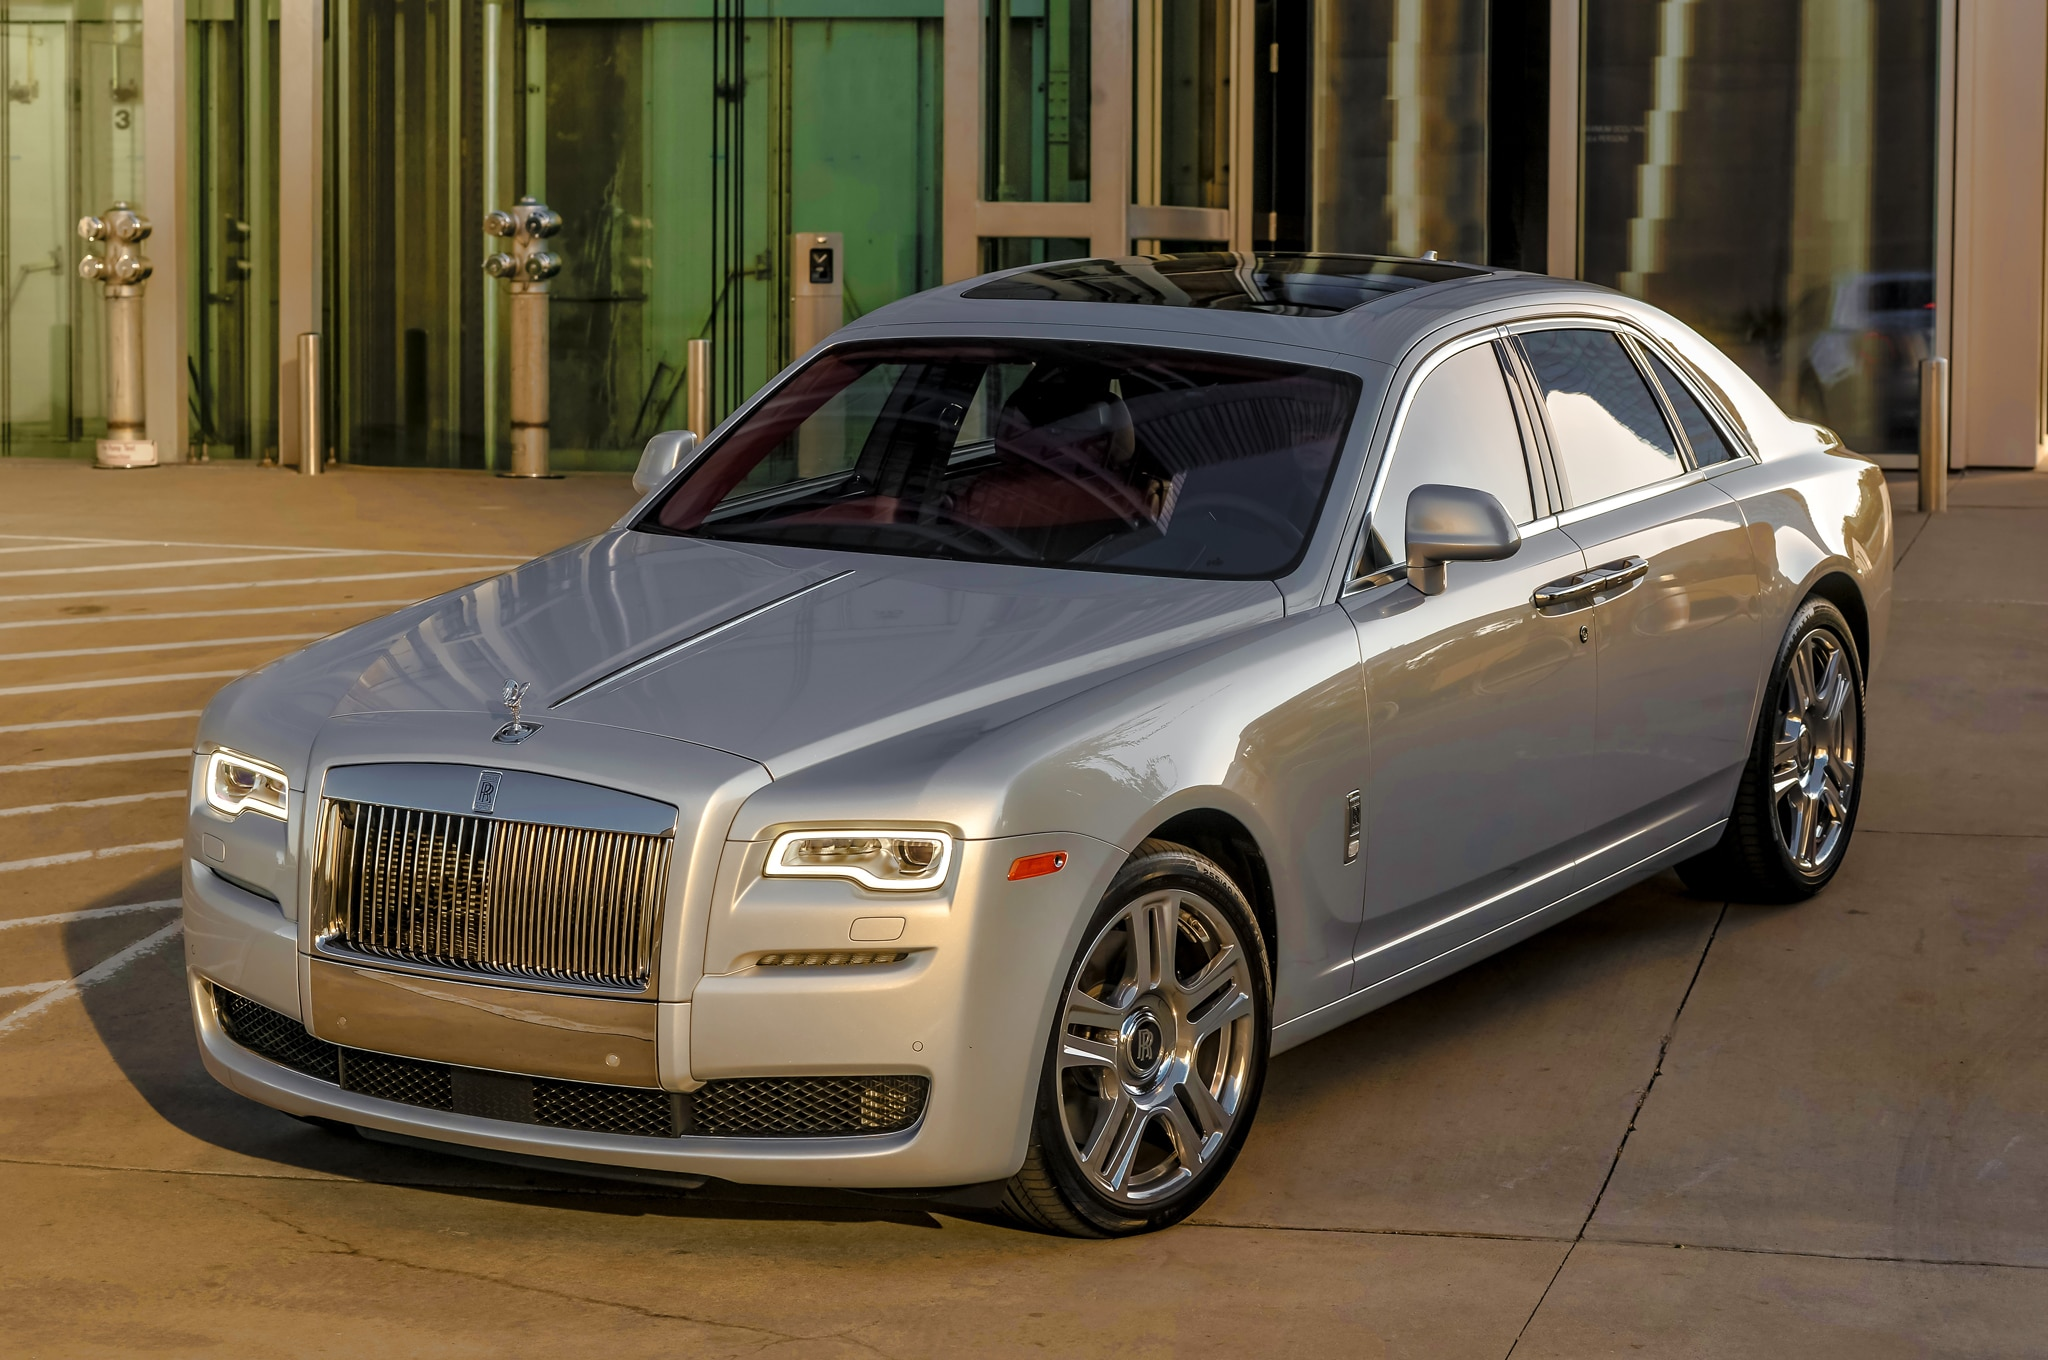 Next Rolls-Royce Phantom to Slim Down Thanks to Aluminum ...